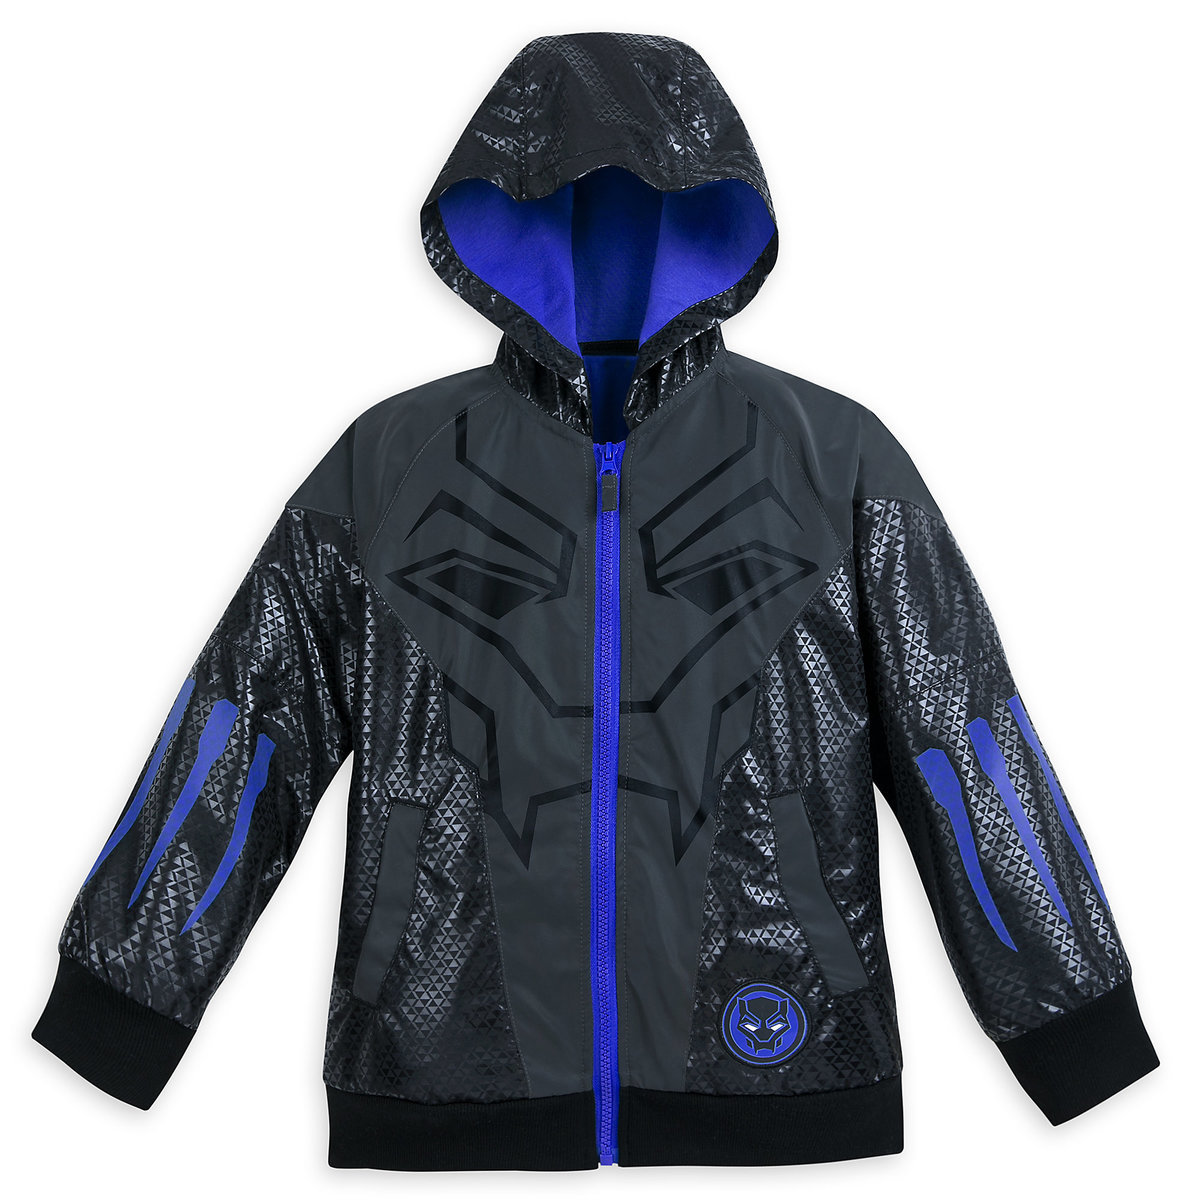 ed2e39932fc27a Product Image of Black Panther Hooded Jacket for Kids by Our Universe # 1